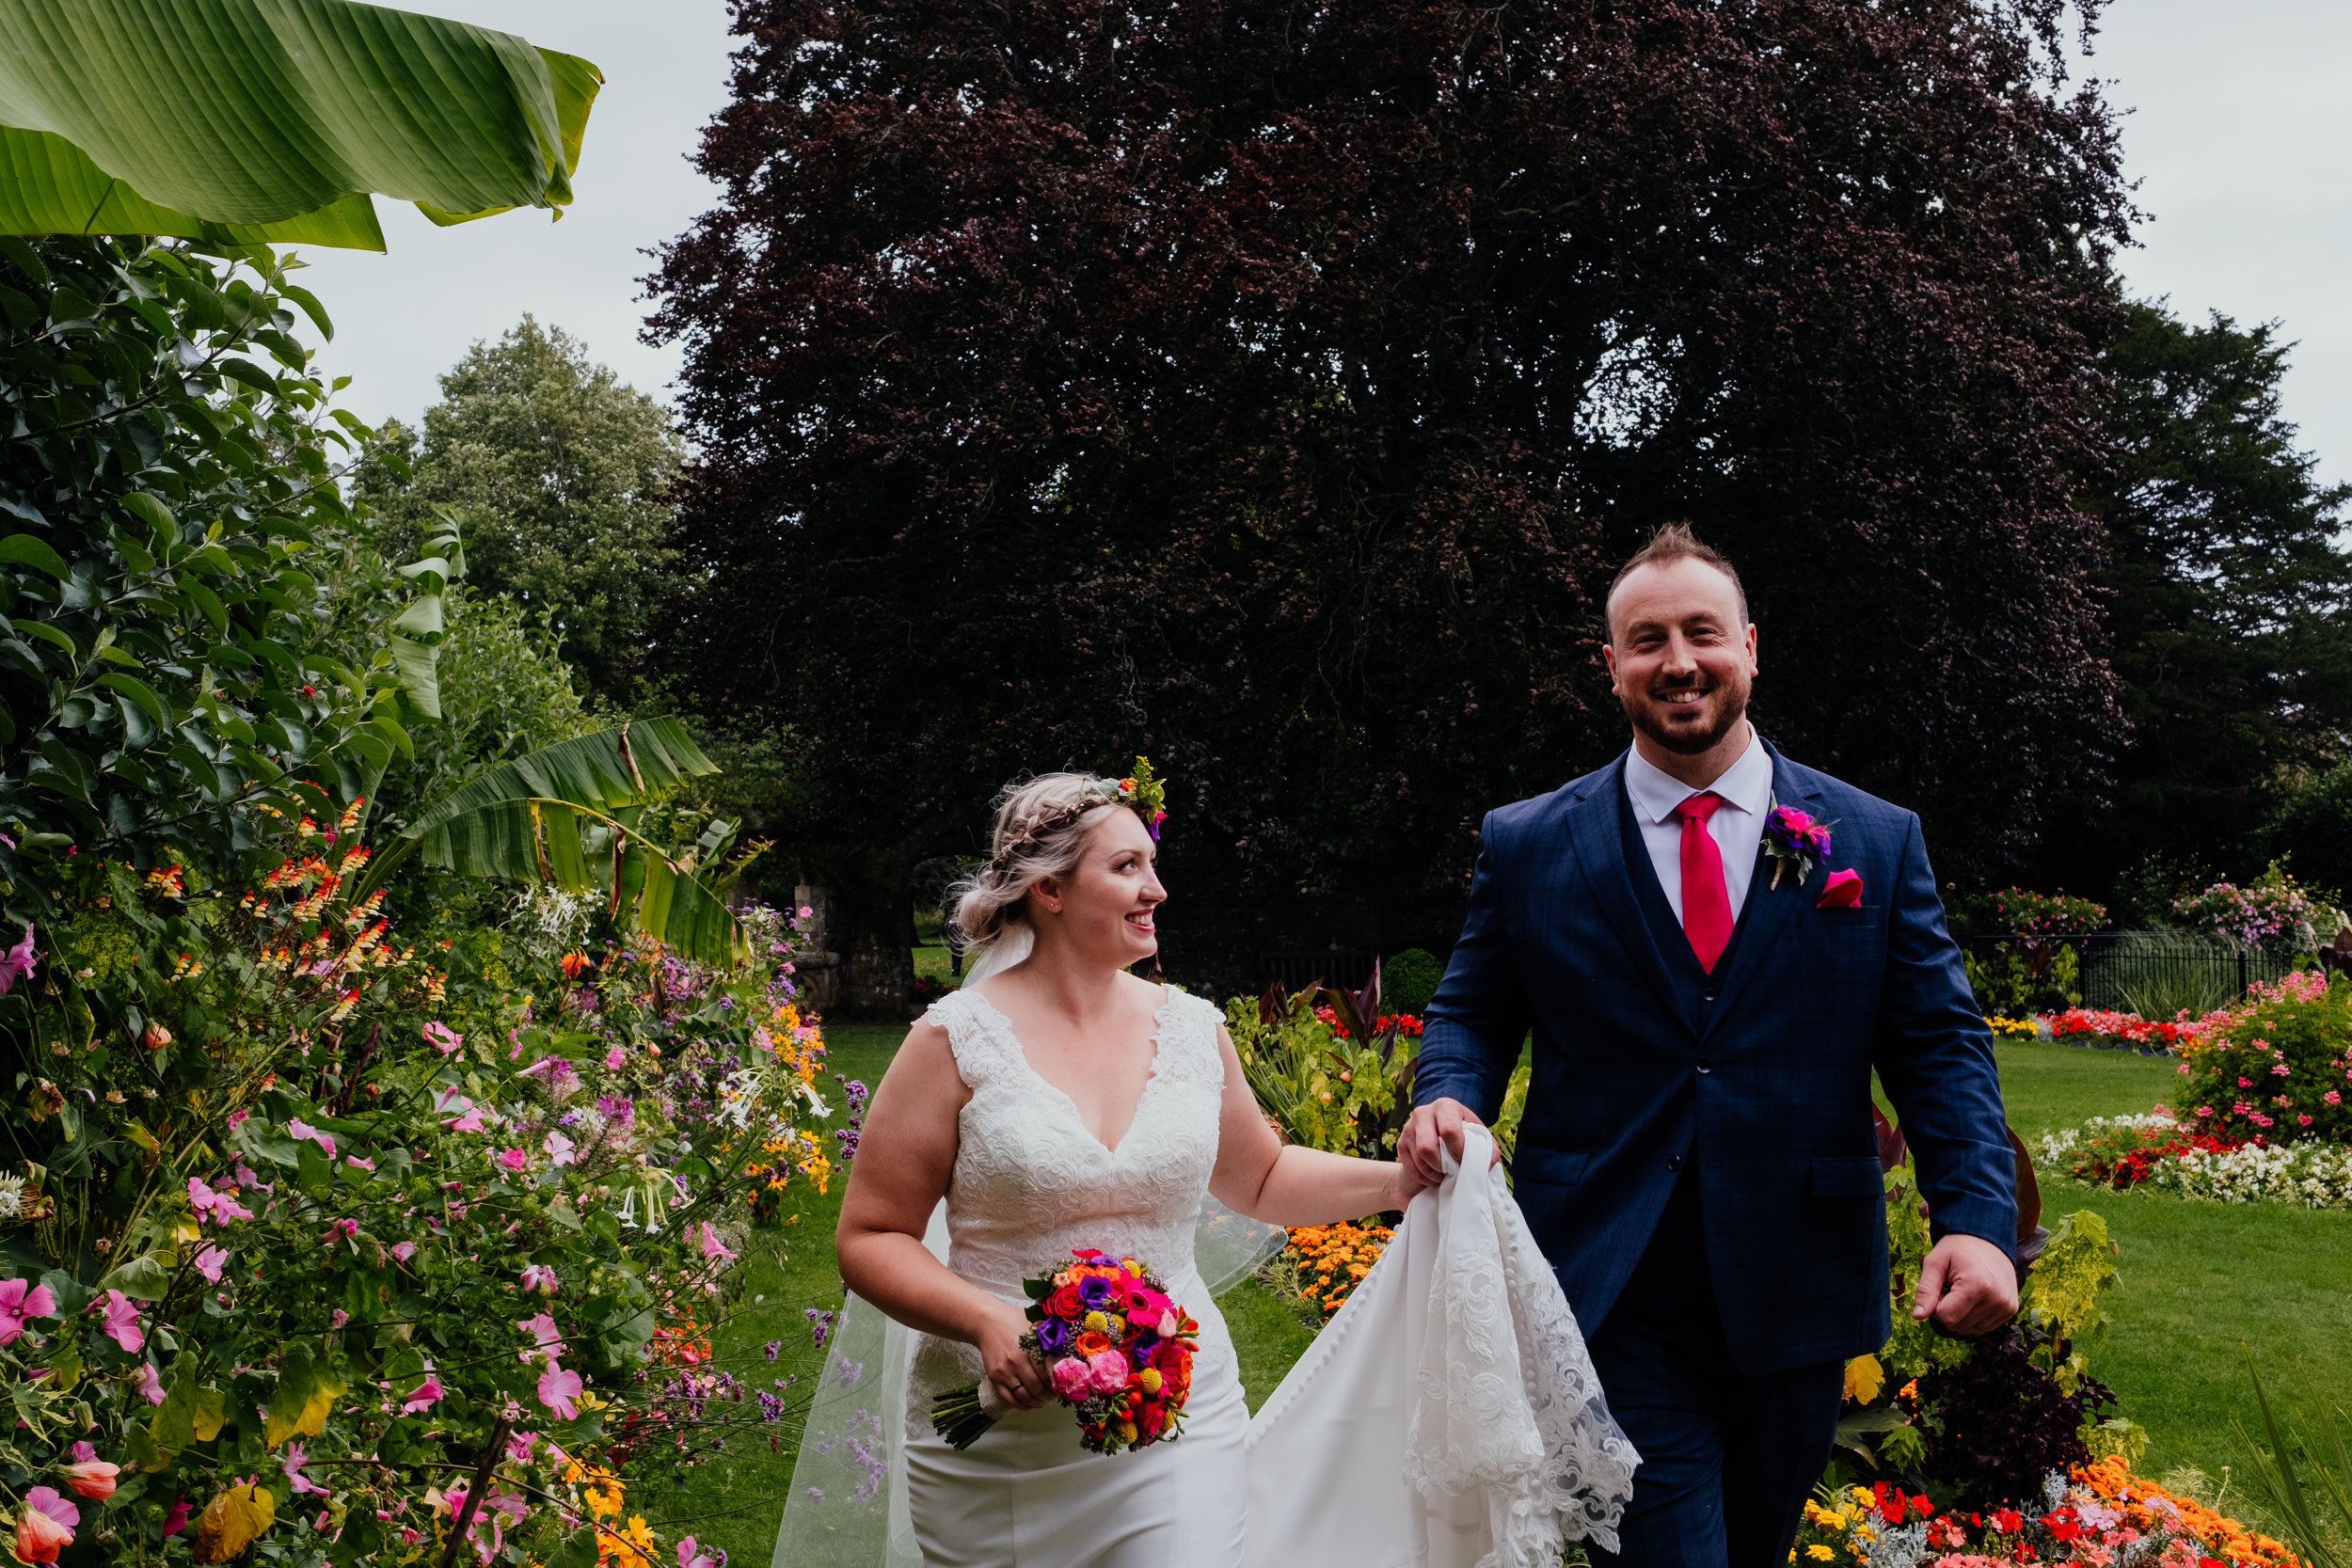 Bride smiling at groom as they walk through flower garden